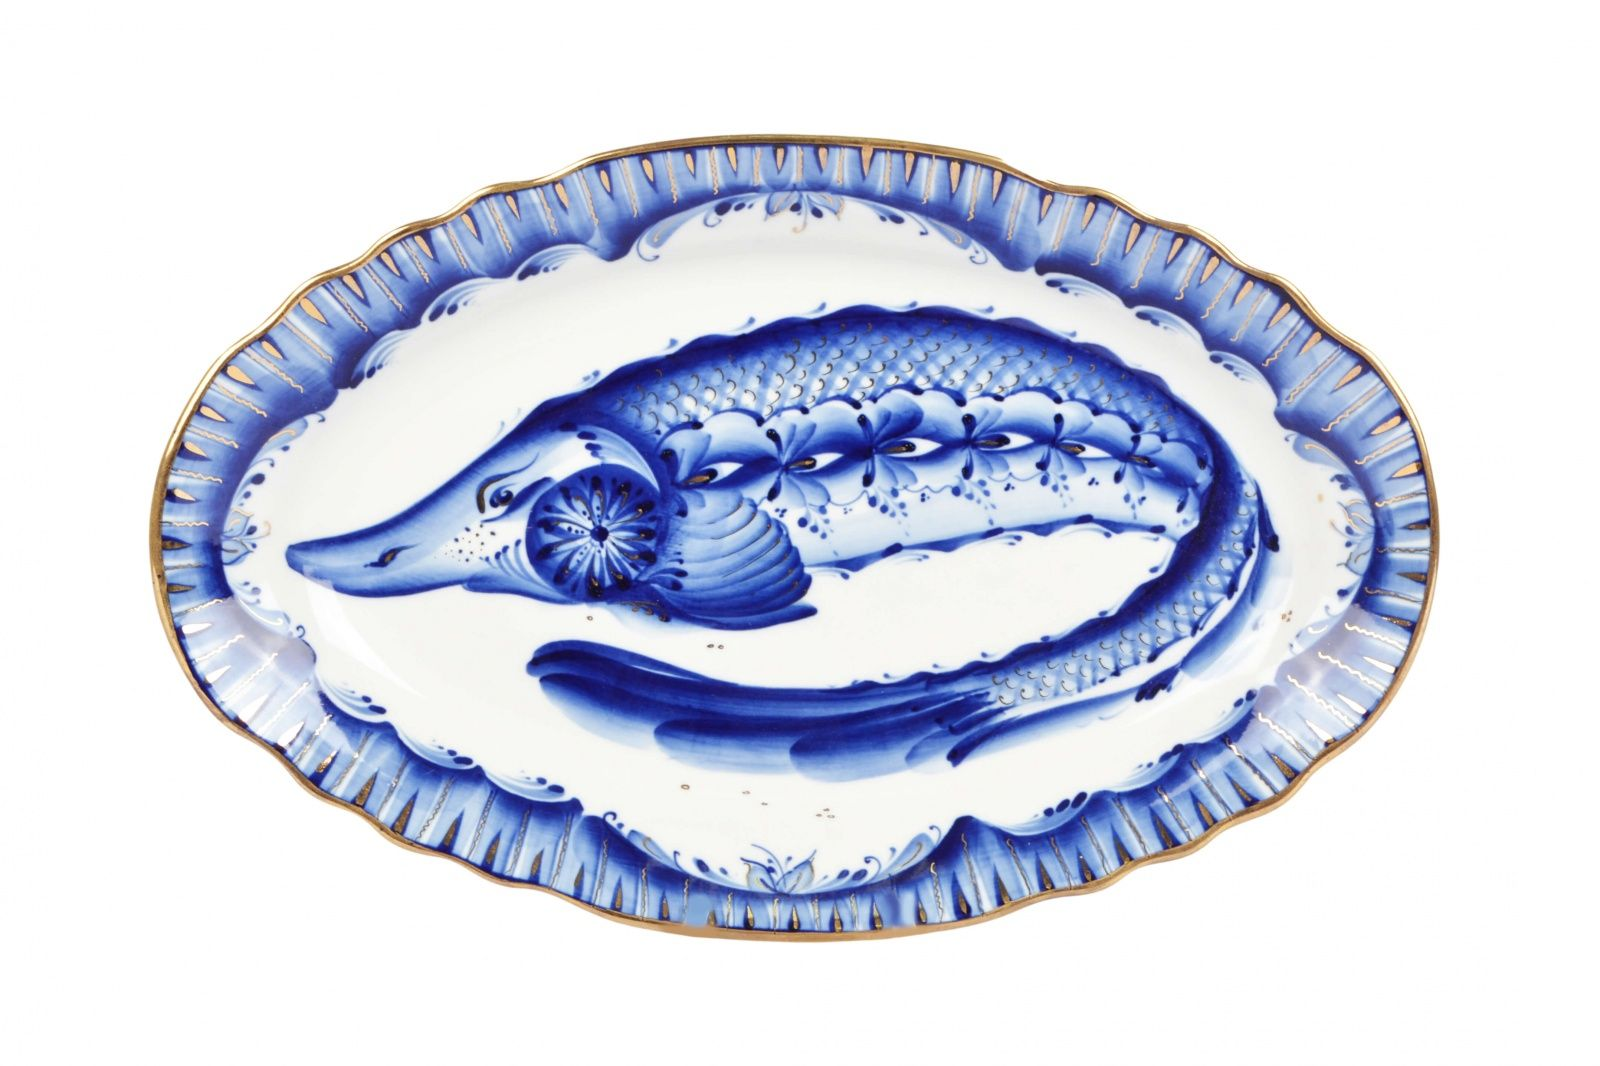 Dulevo porcelain / Oval dish 350 mm Carved edge Fish Gold